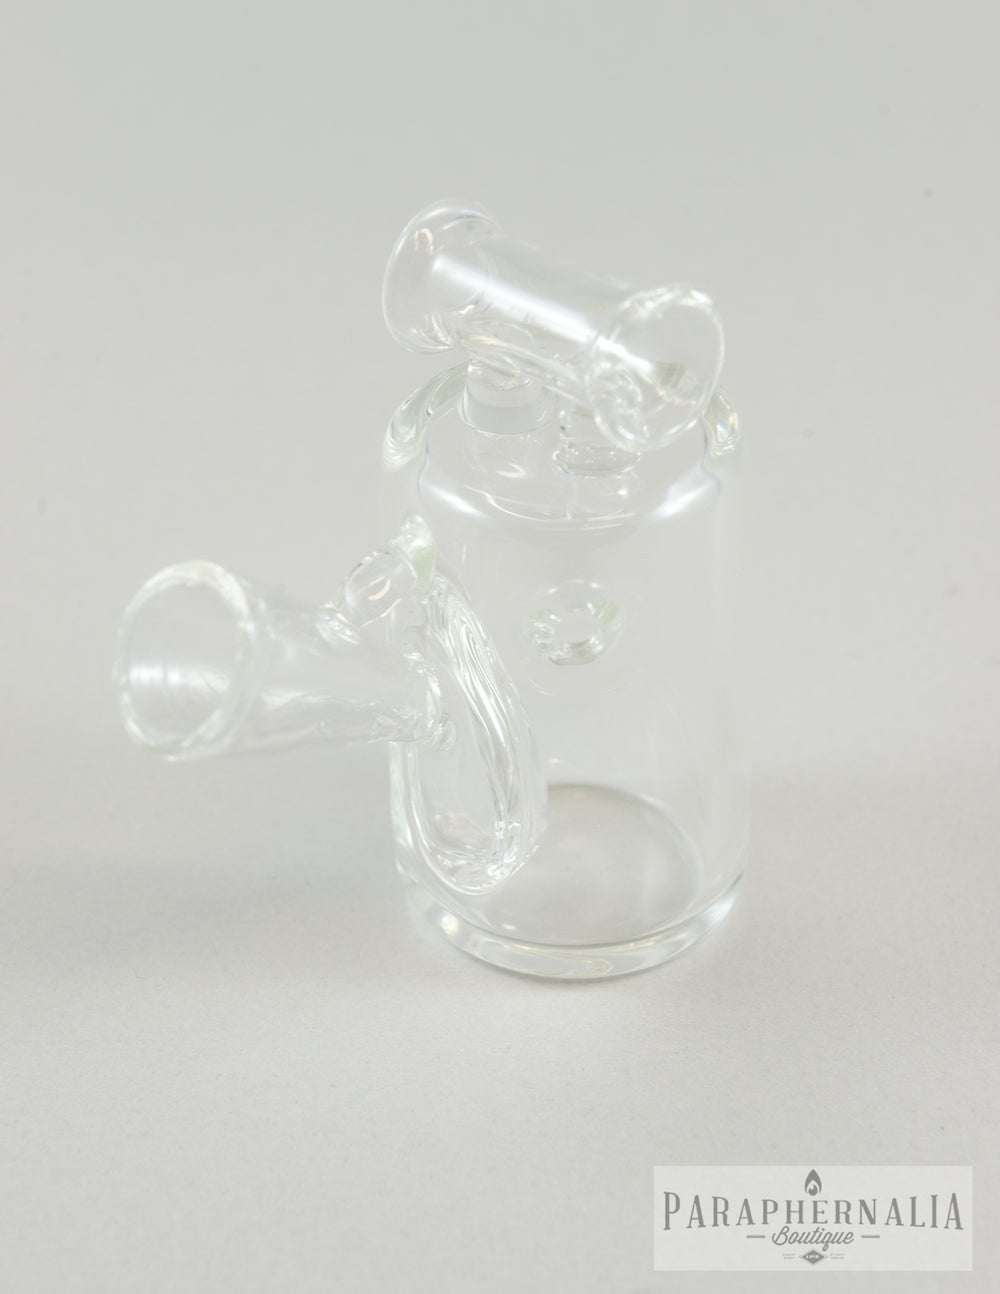 CHANGE - Add to Ely Andrew Blunt Bubbler aka The Blubbler